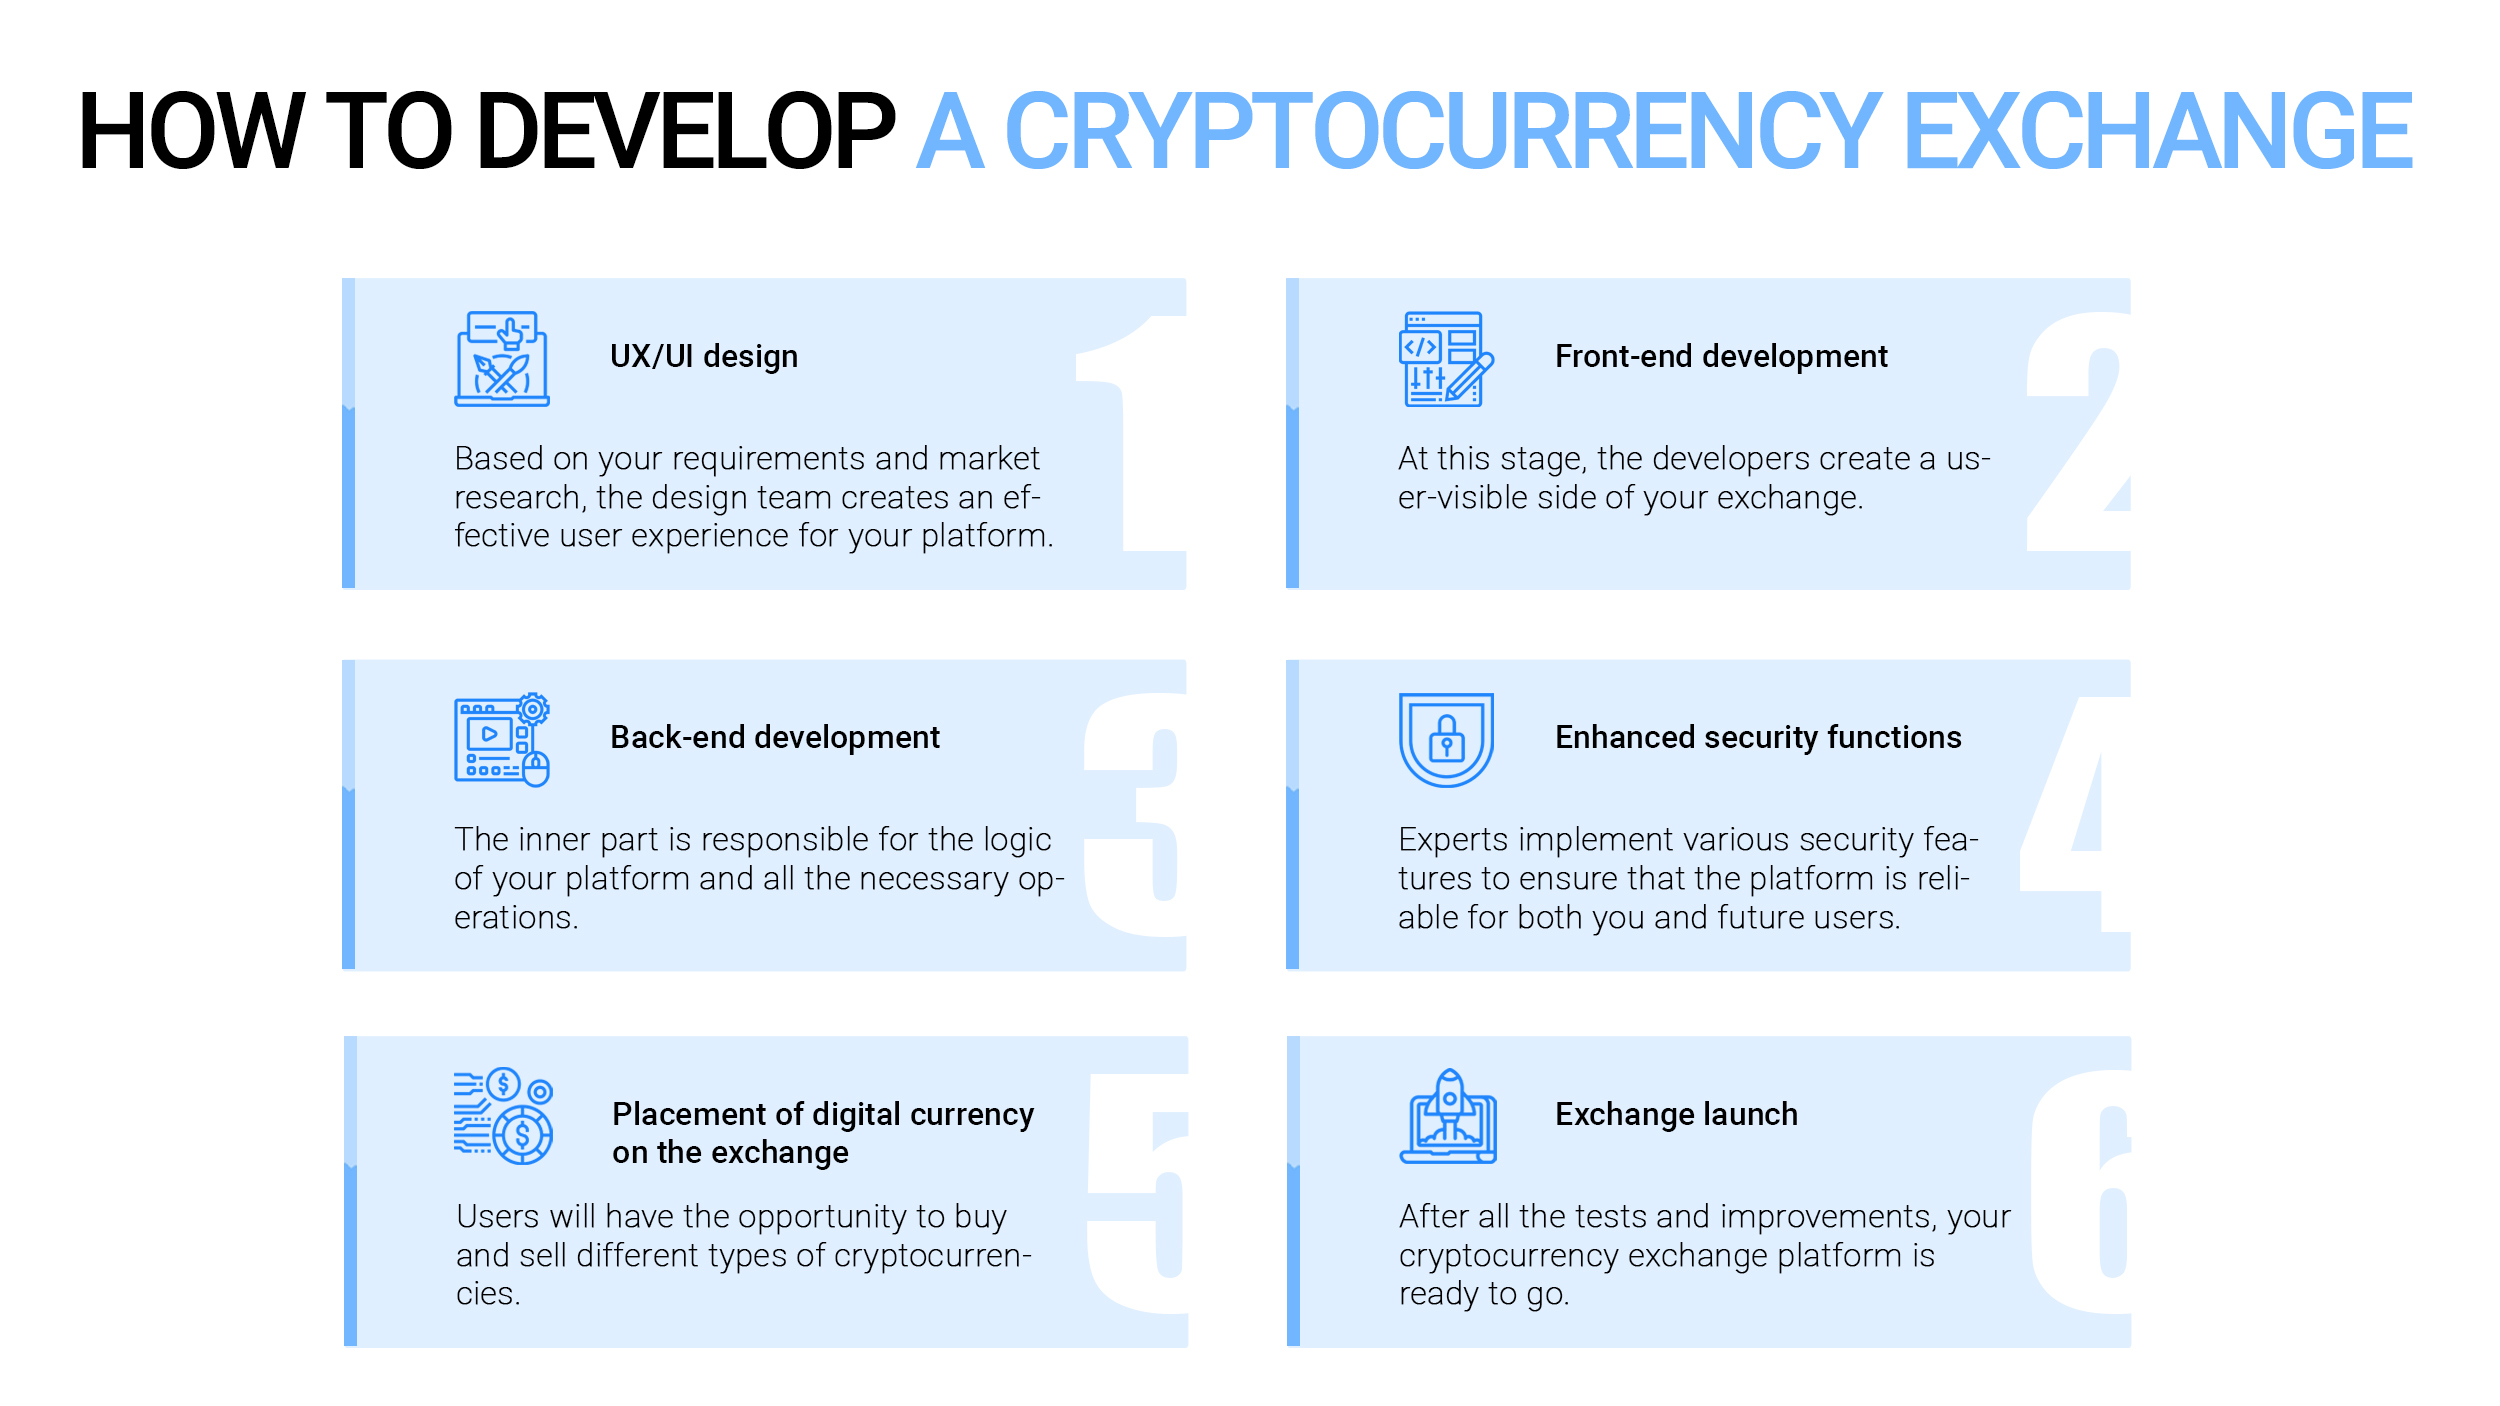 How to develop a cryptocurrency exchange